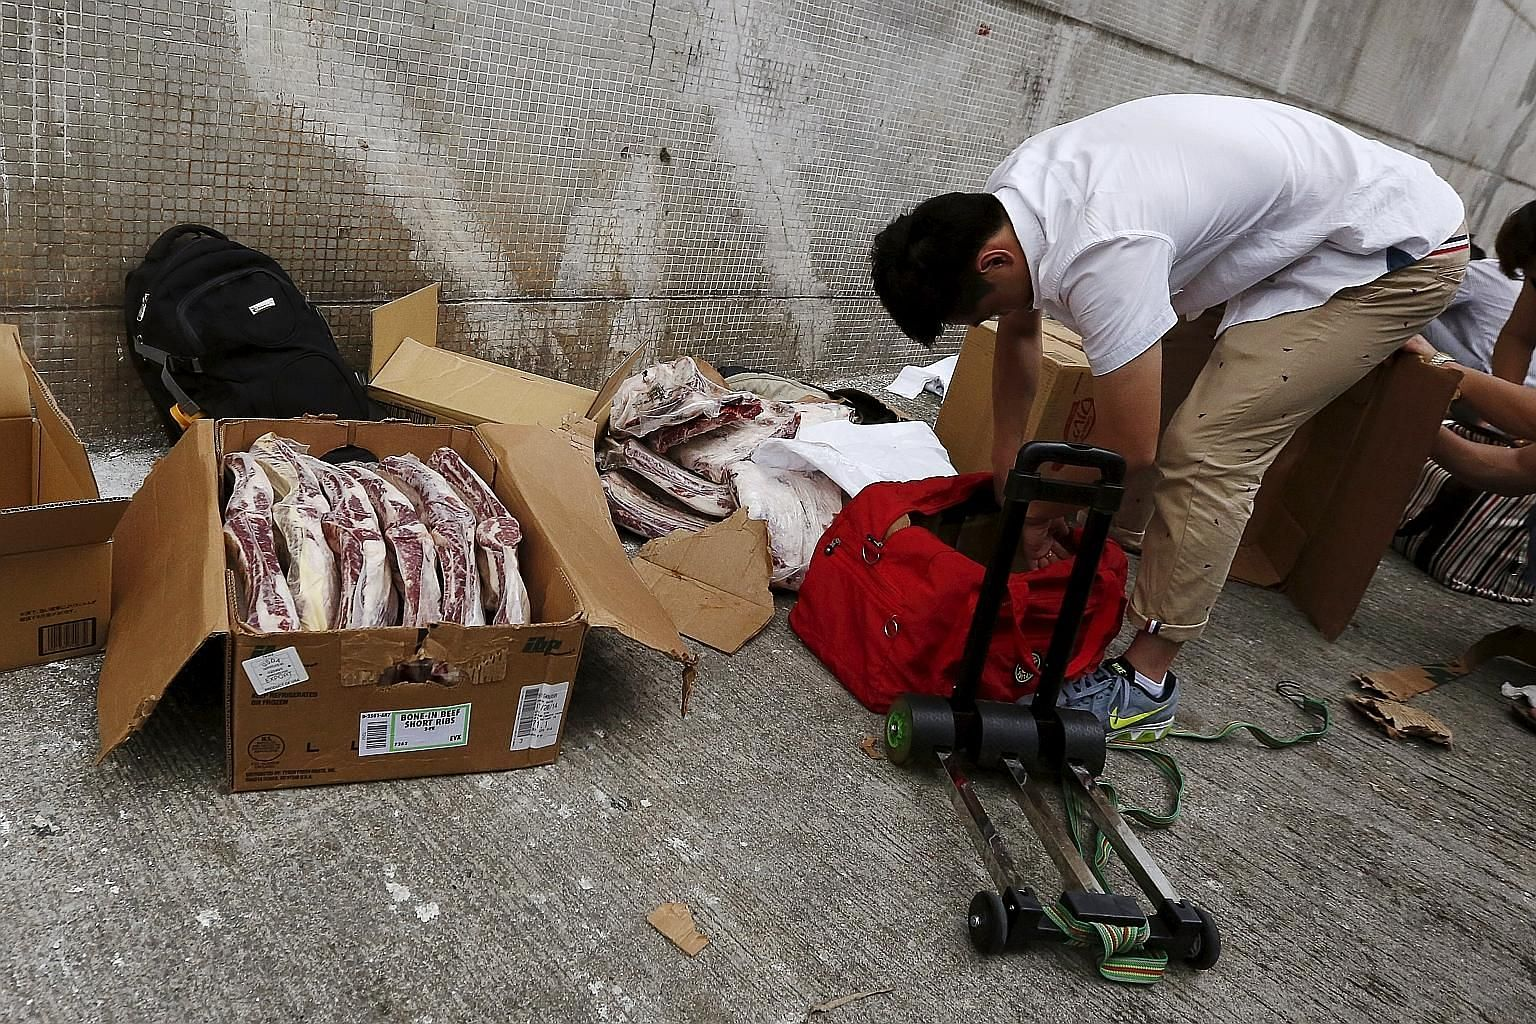 Boxes of frozen beef ribs from the US being unpacked on a side street in a Hong Kong industrial area on Monday, before they are hand-carried and smuggled into mainland China.